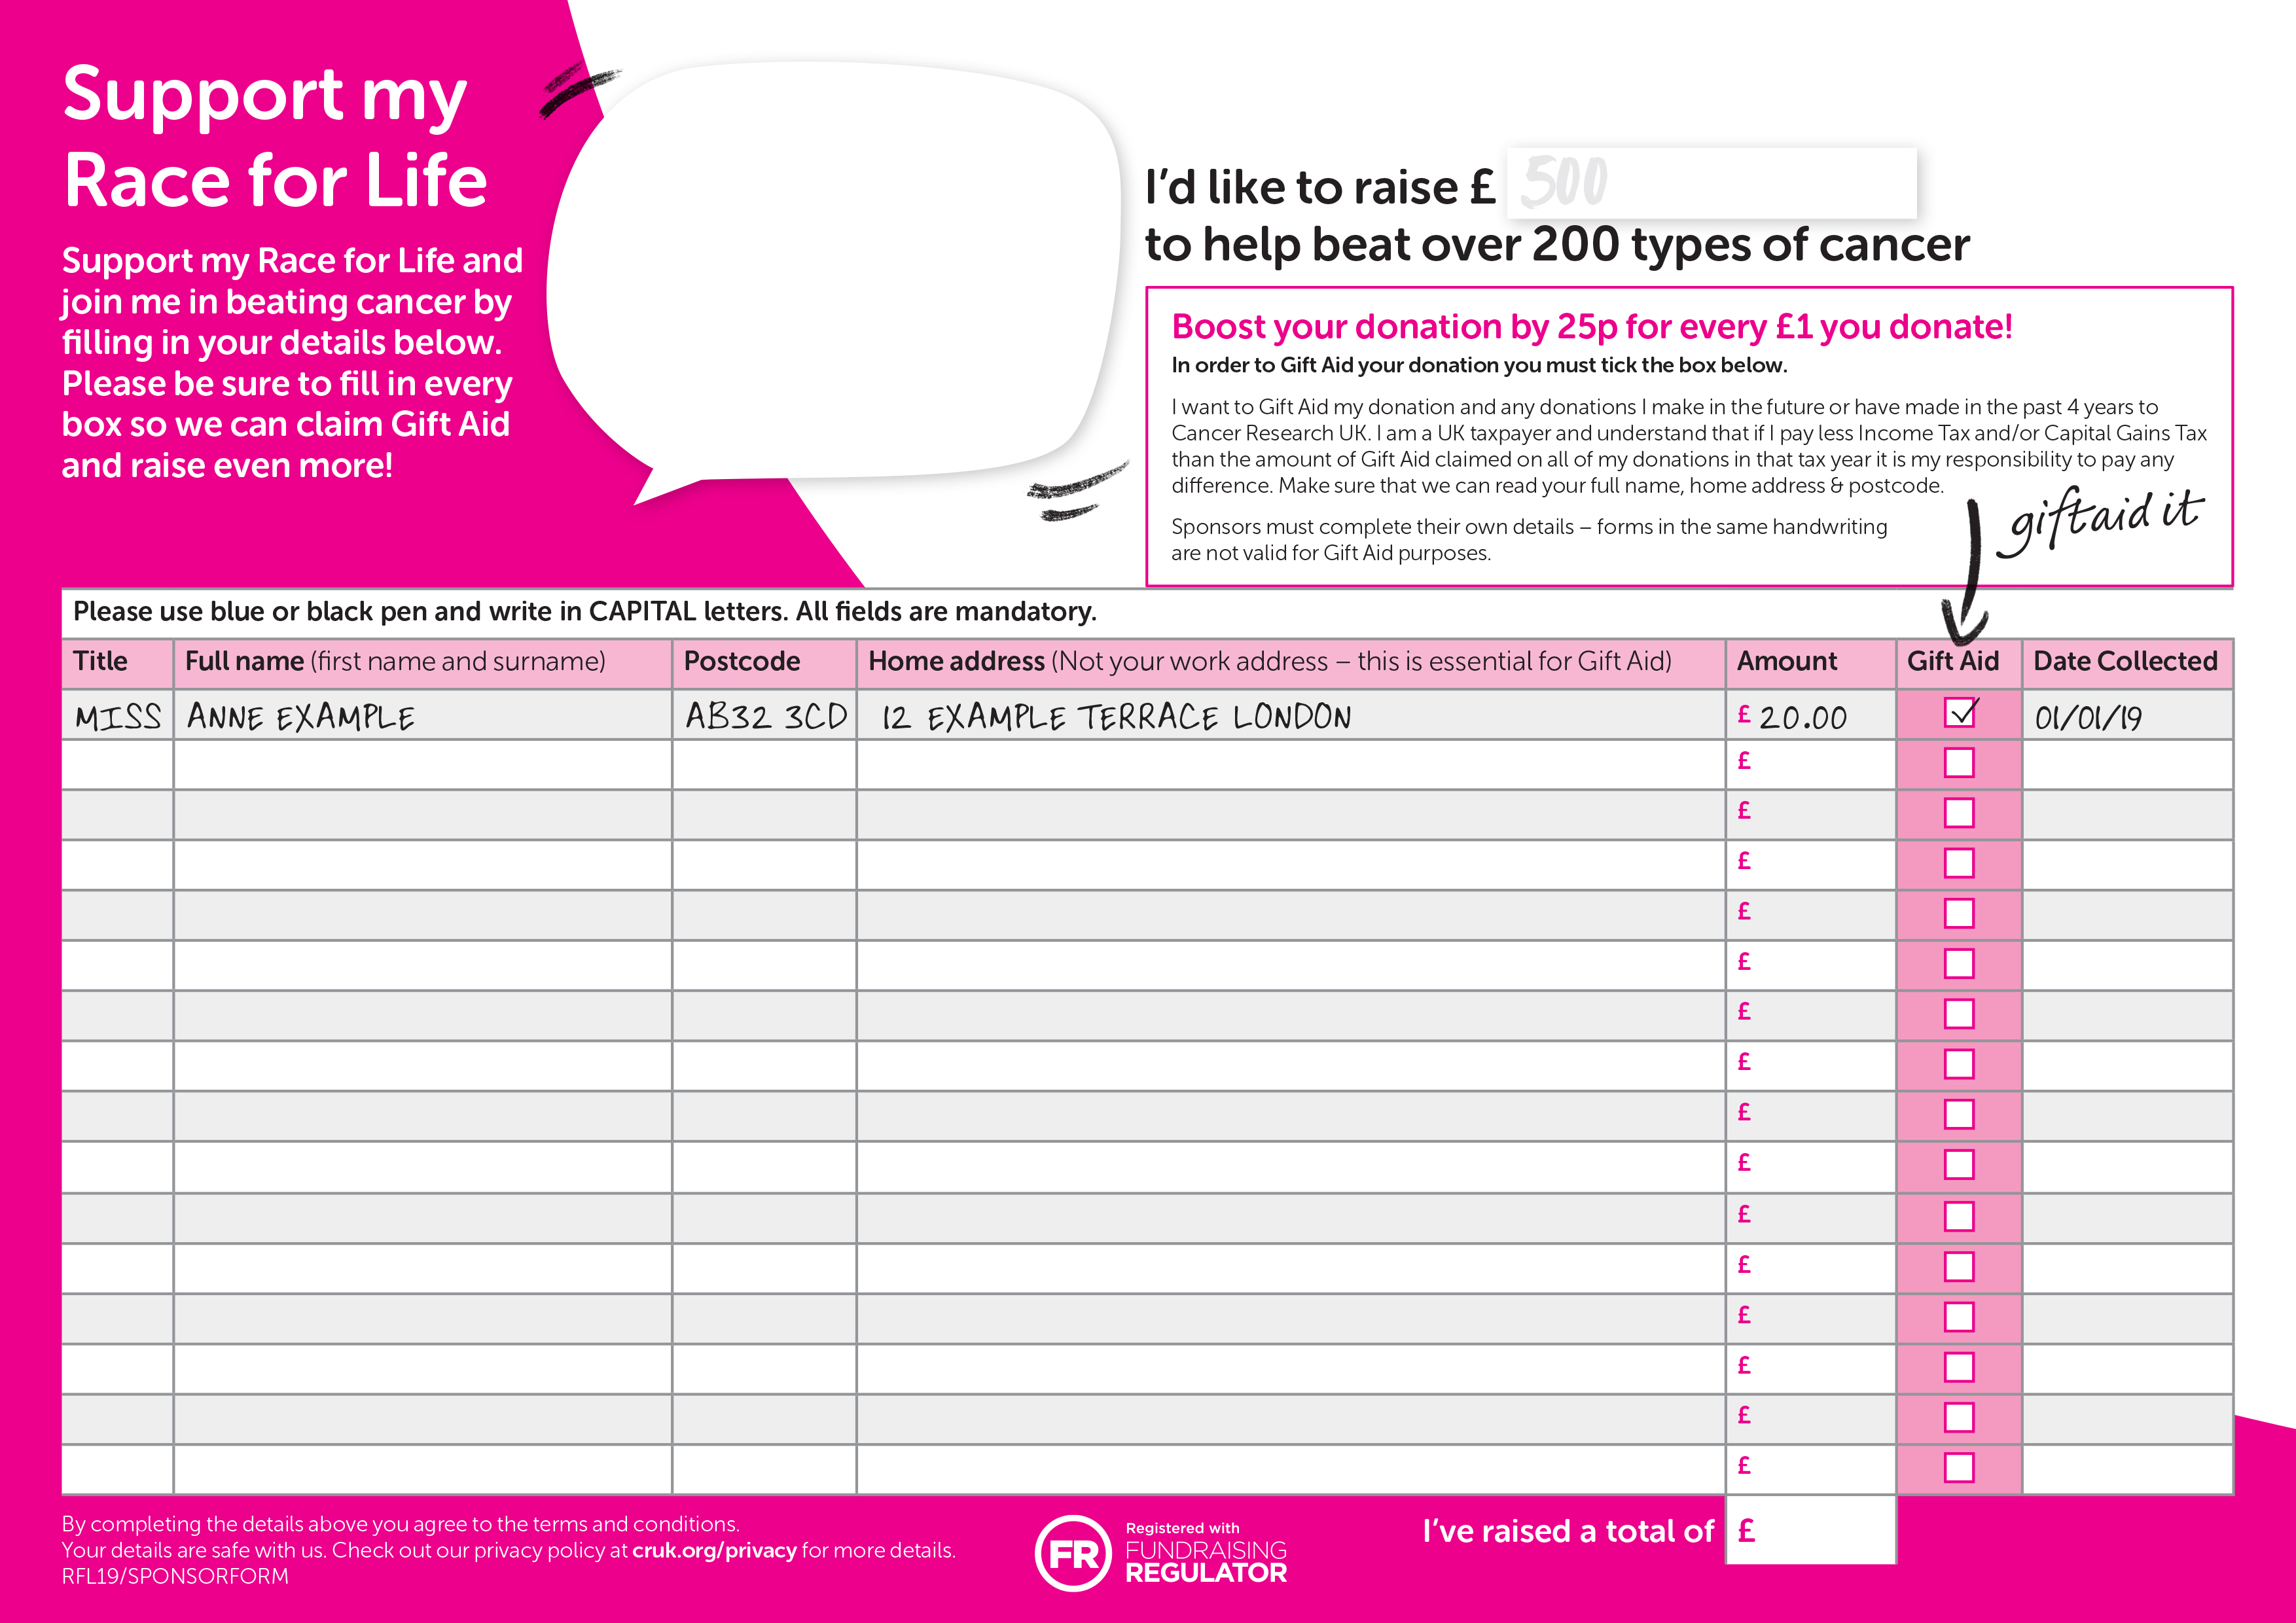 Race For Life Support Form